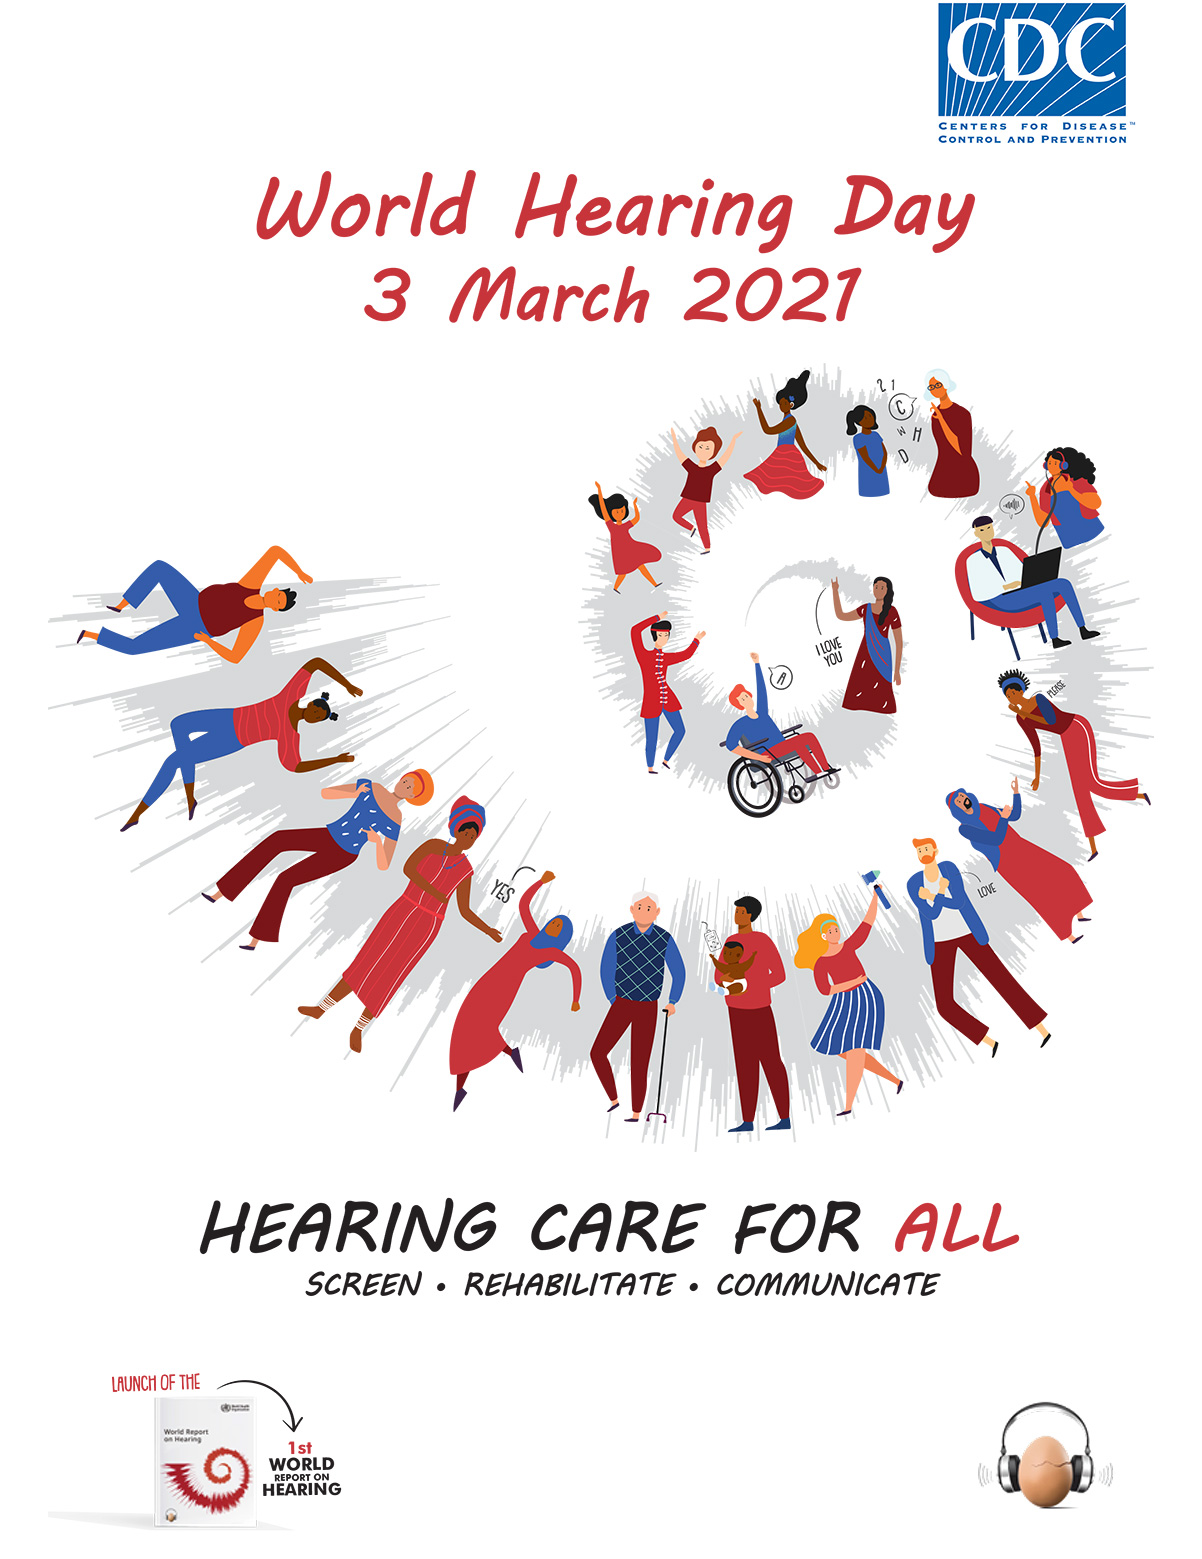 World Hearing Day March 3, 2021. Hearing care for all. Screen, rehabilitate and communicate.